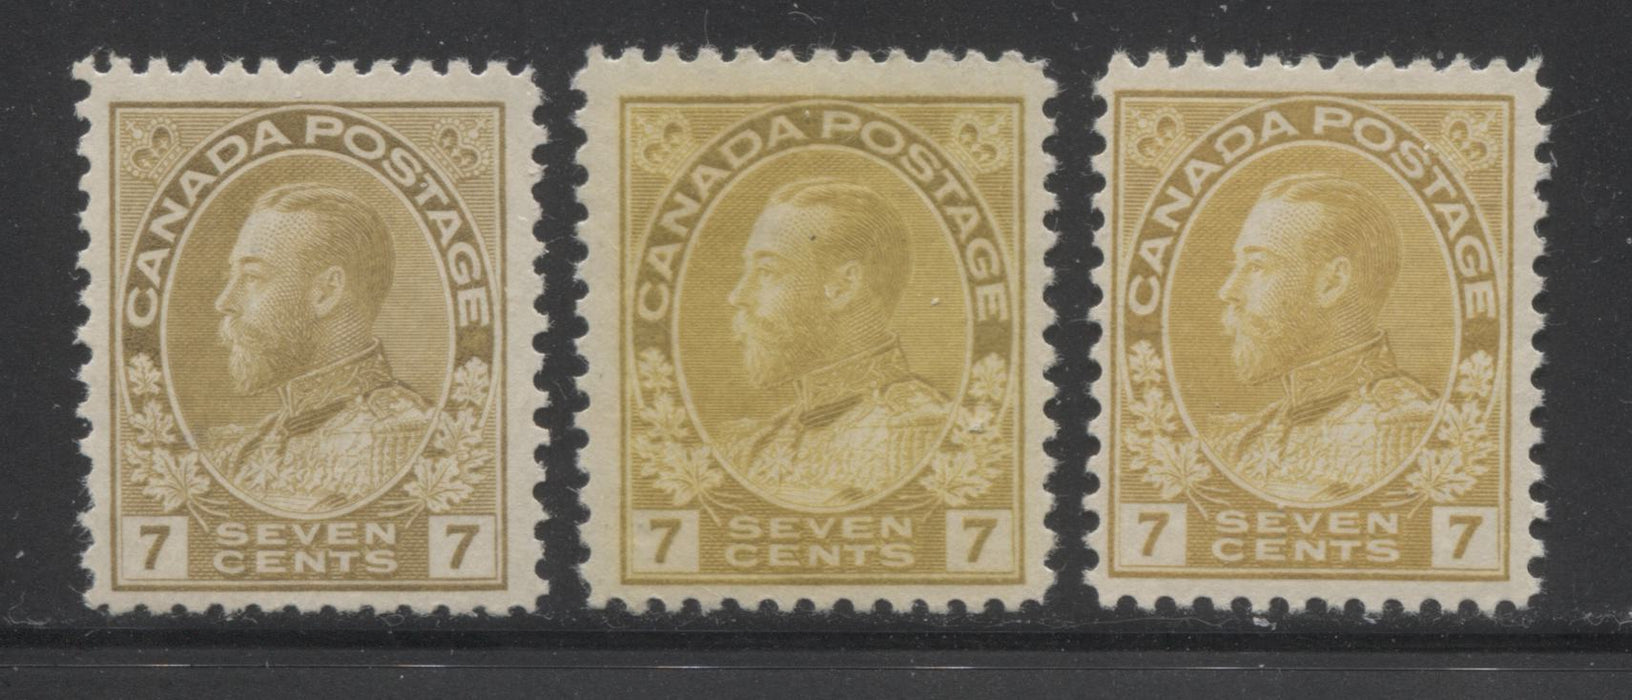 Canada #113/113c 7c Straw, Yellow Ochre and Olive Bistre, King George V 1911-1928 Admiral Issue Fine Mint OG Examples Brixton Chrome